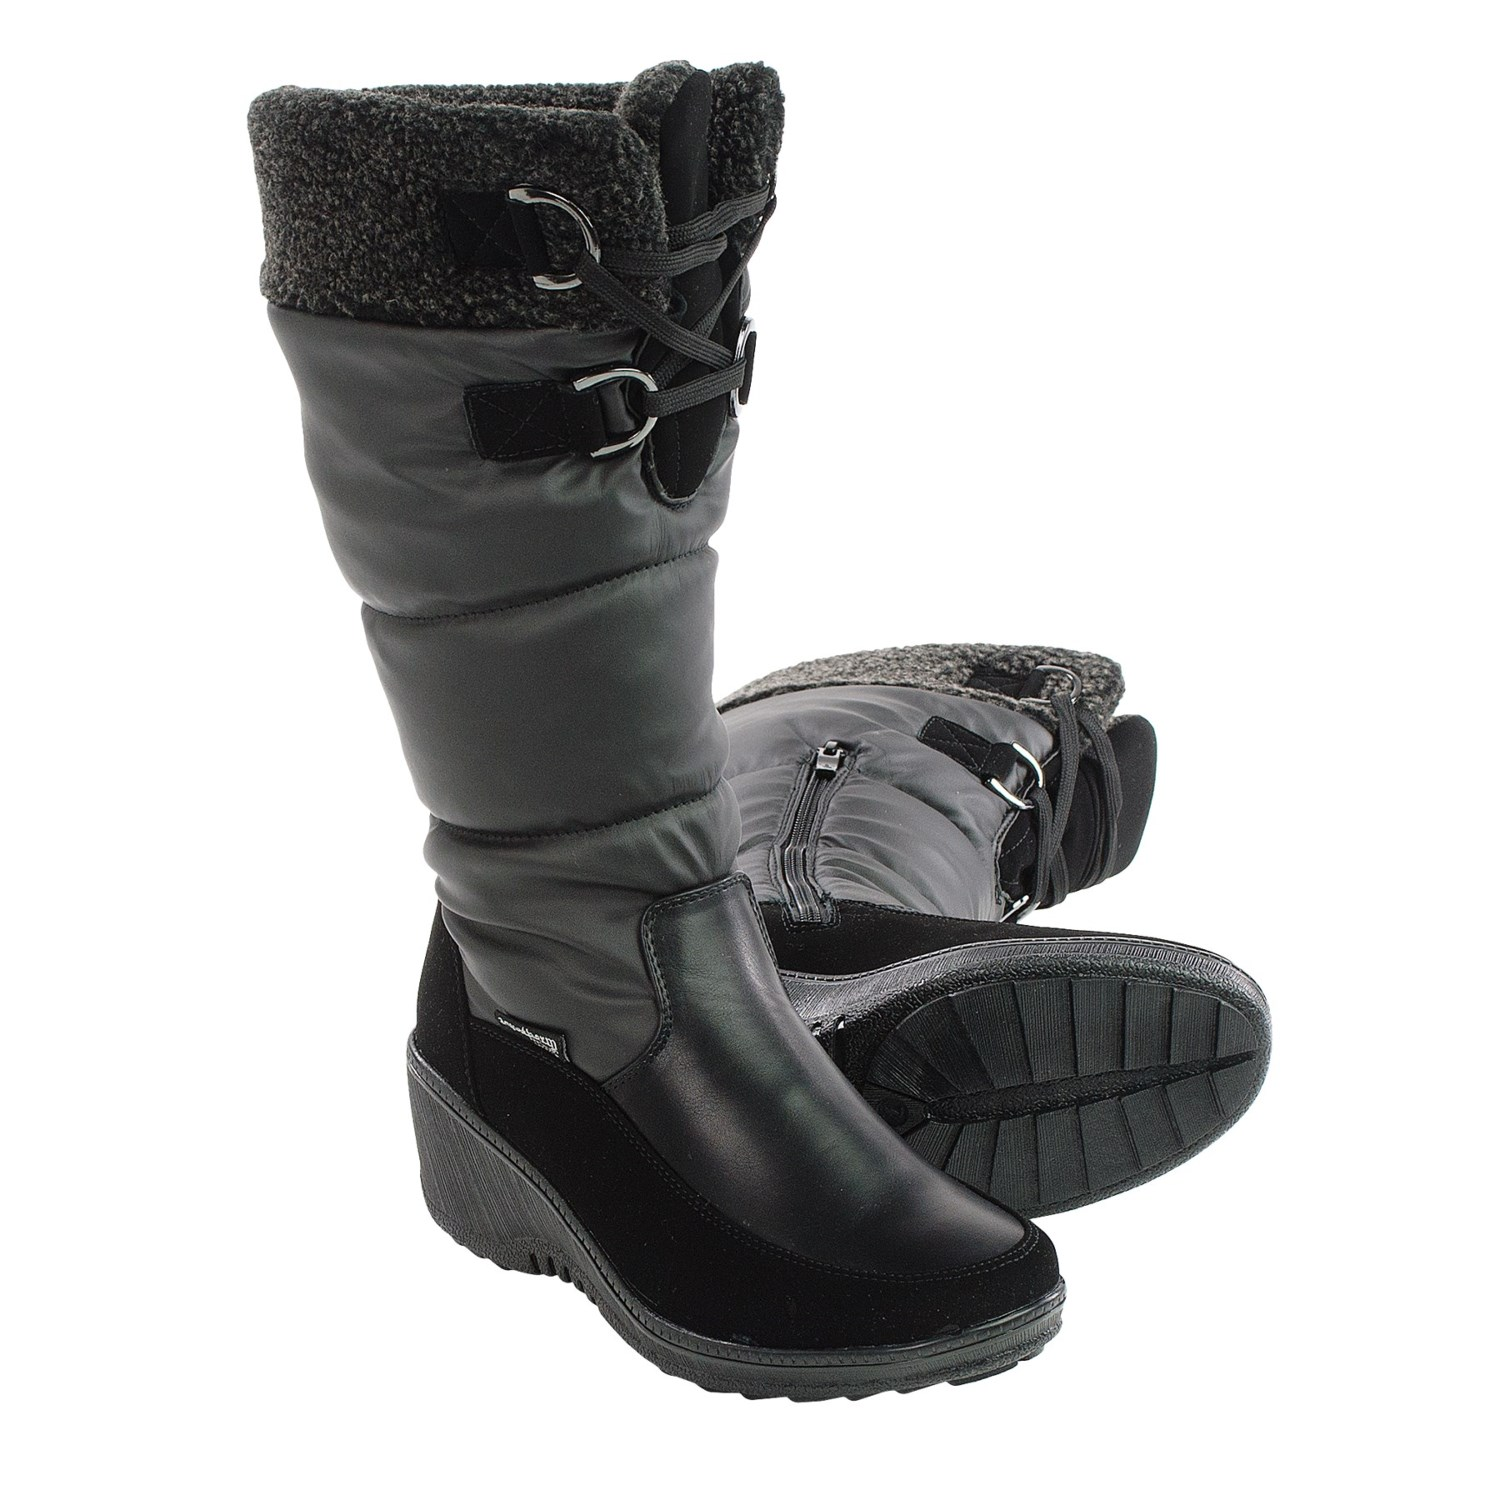 Cougar Bistro Snow Boots (For Women) 9871Y - Save 56%